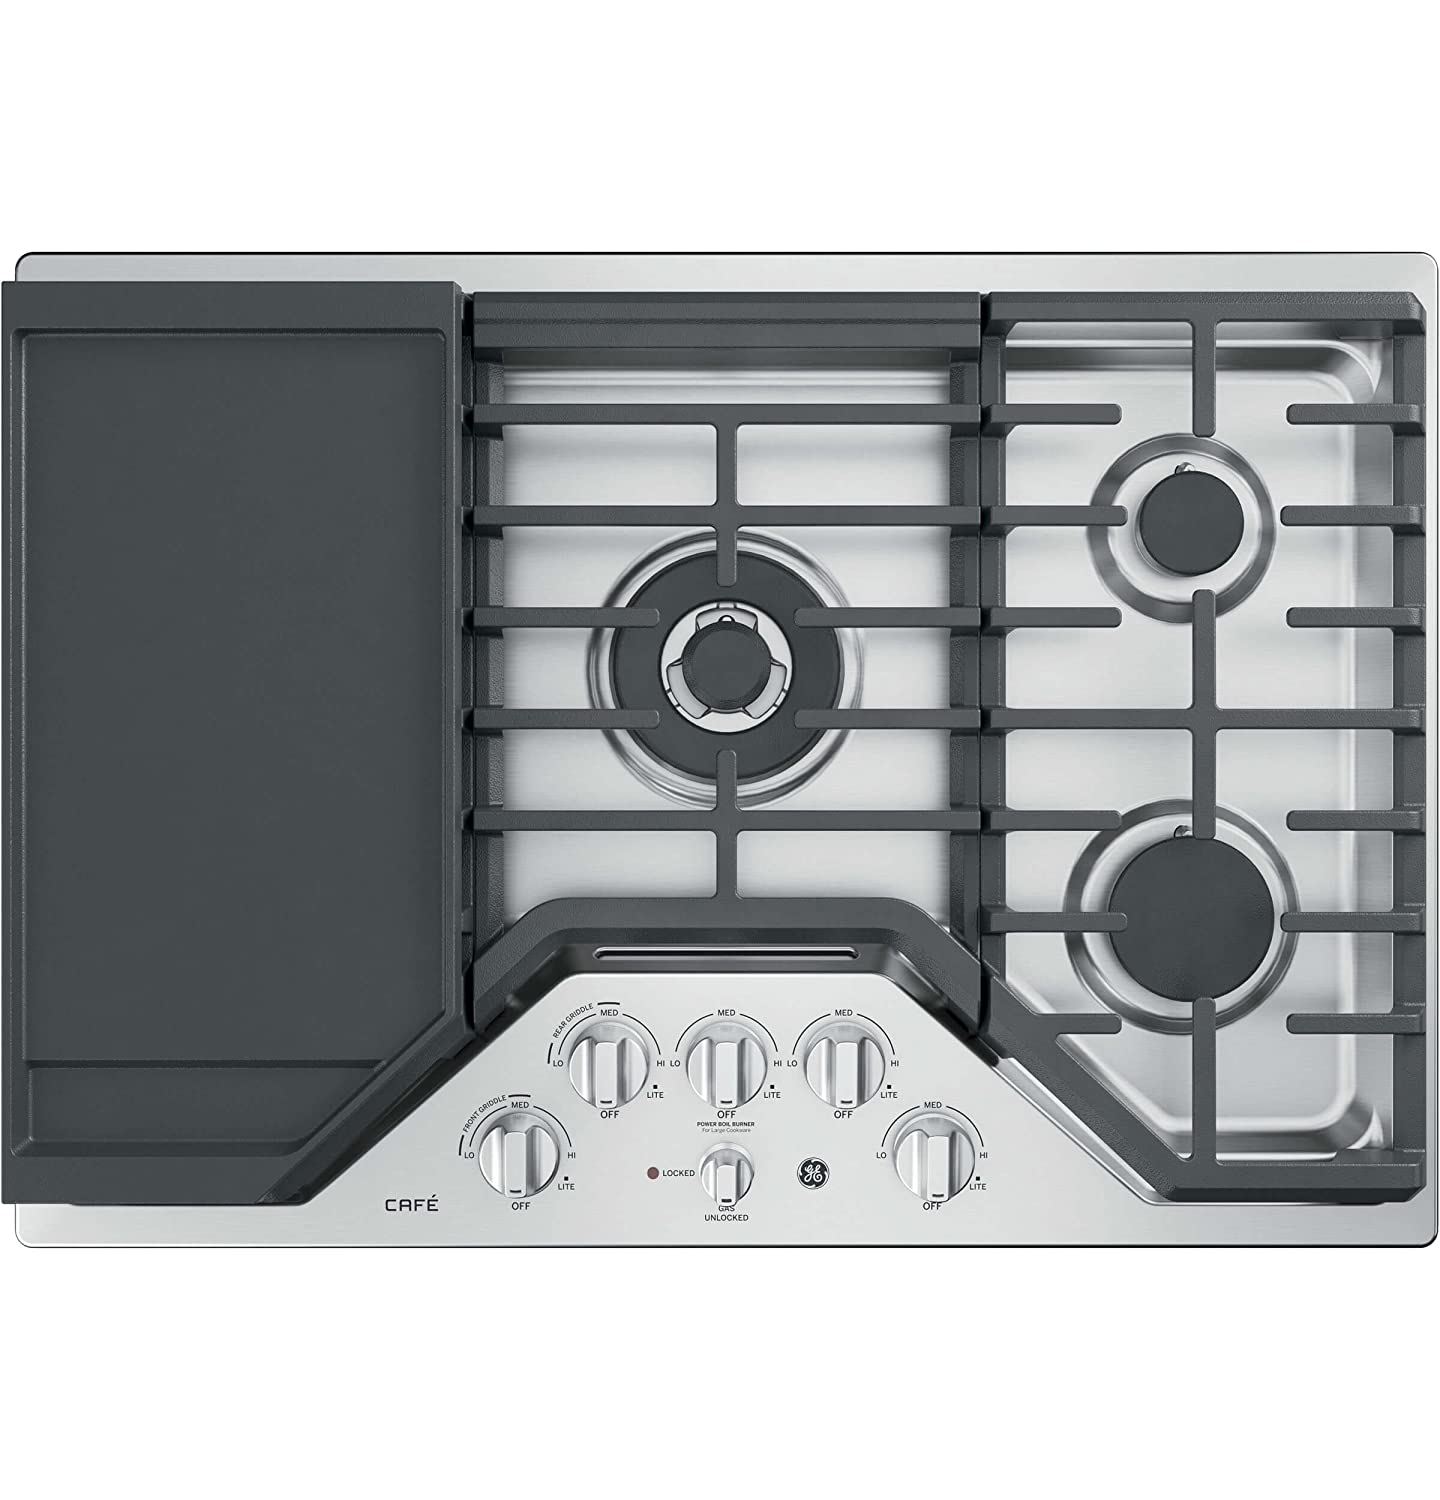 GE Cafe 30' Gas Cooktop Stainless Steel 5 Burner w/ Griddle CGP9530SLSS